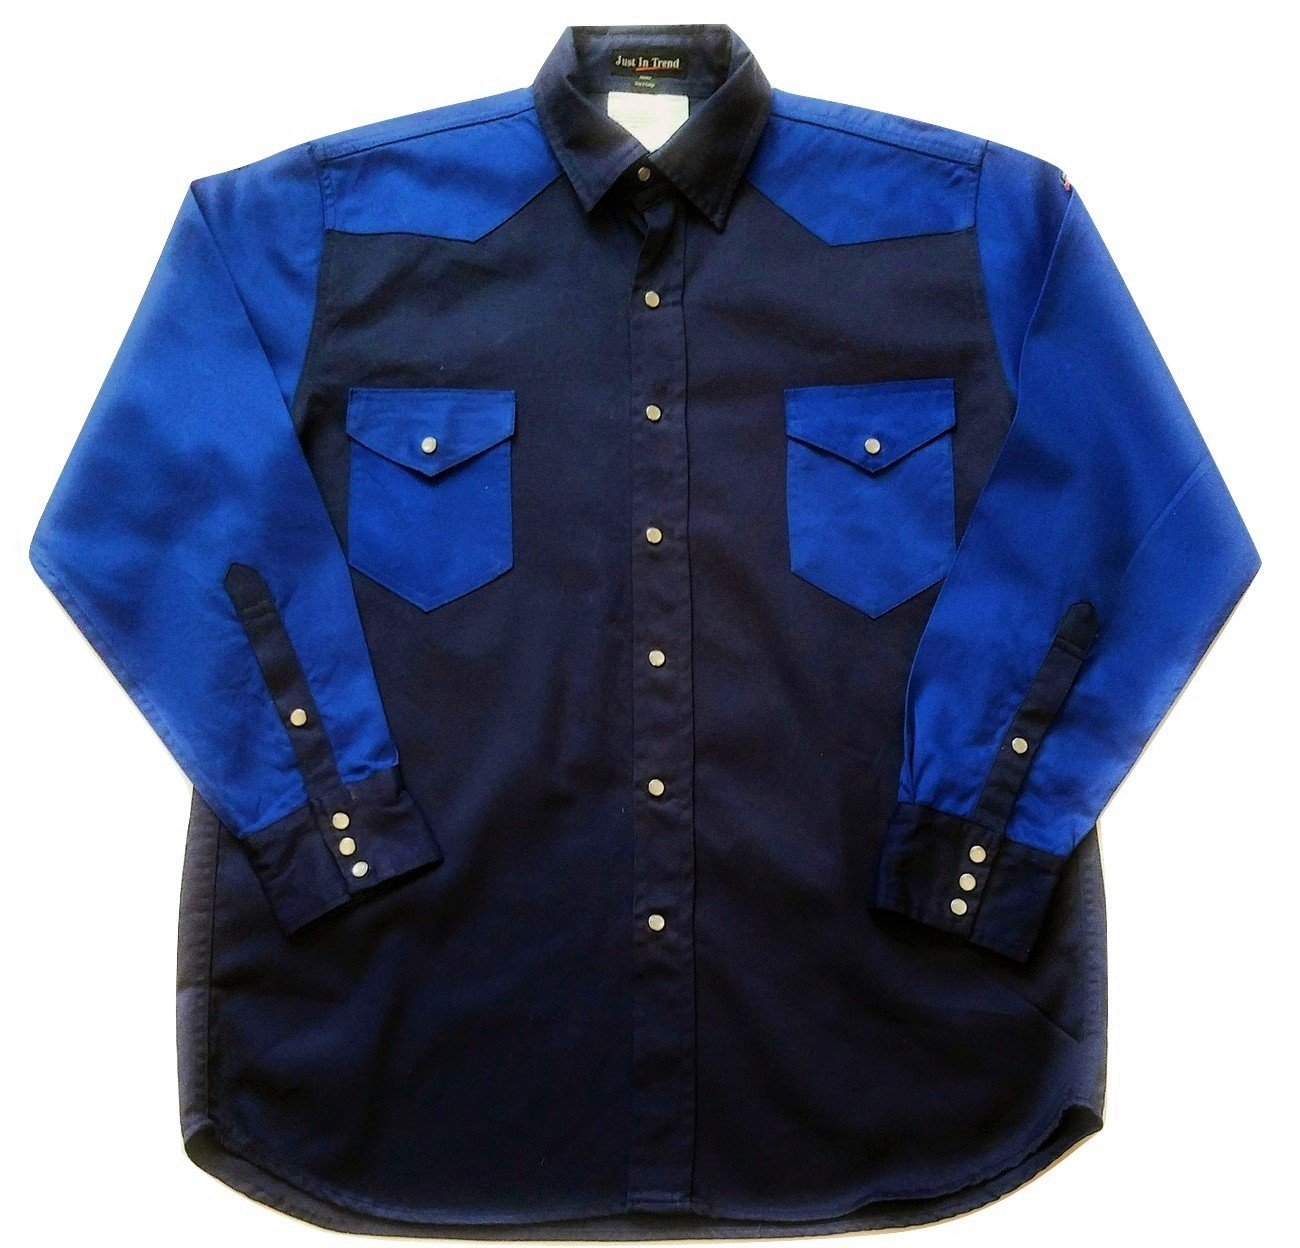 Just In Trend SHIRT メンズ B07646JXNR S|Dark Blue / Royal Blue Dark Blue / Royal Blue S